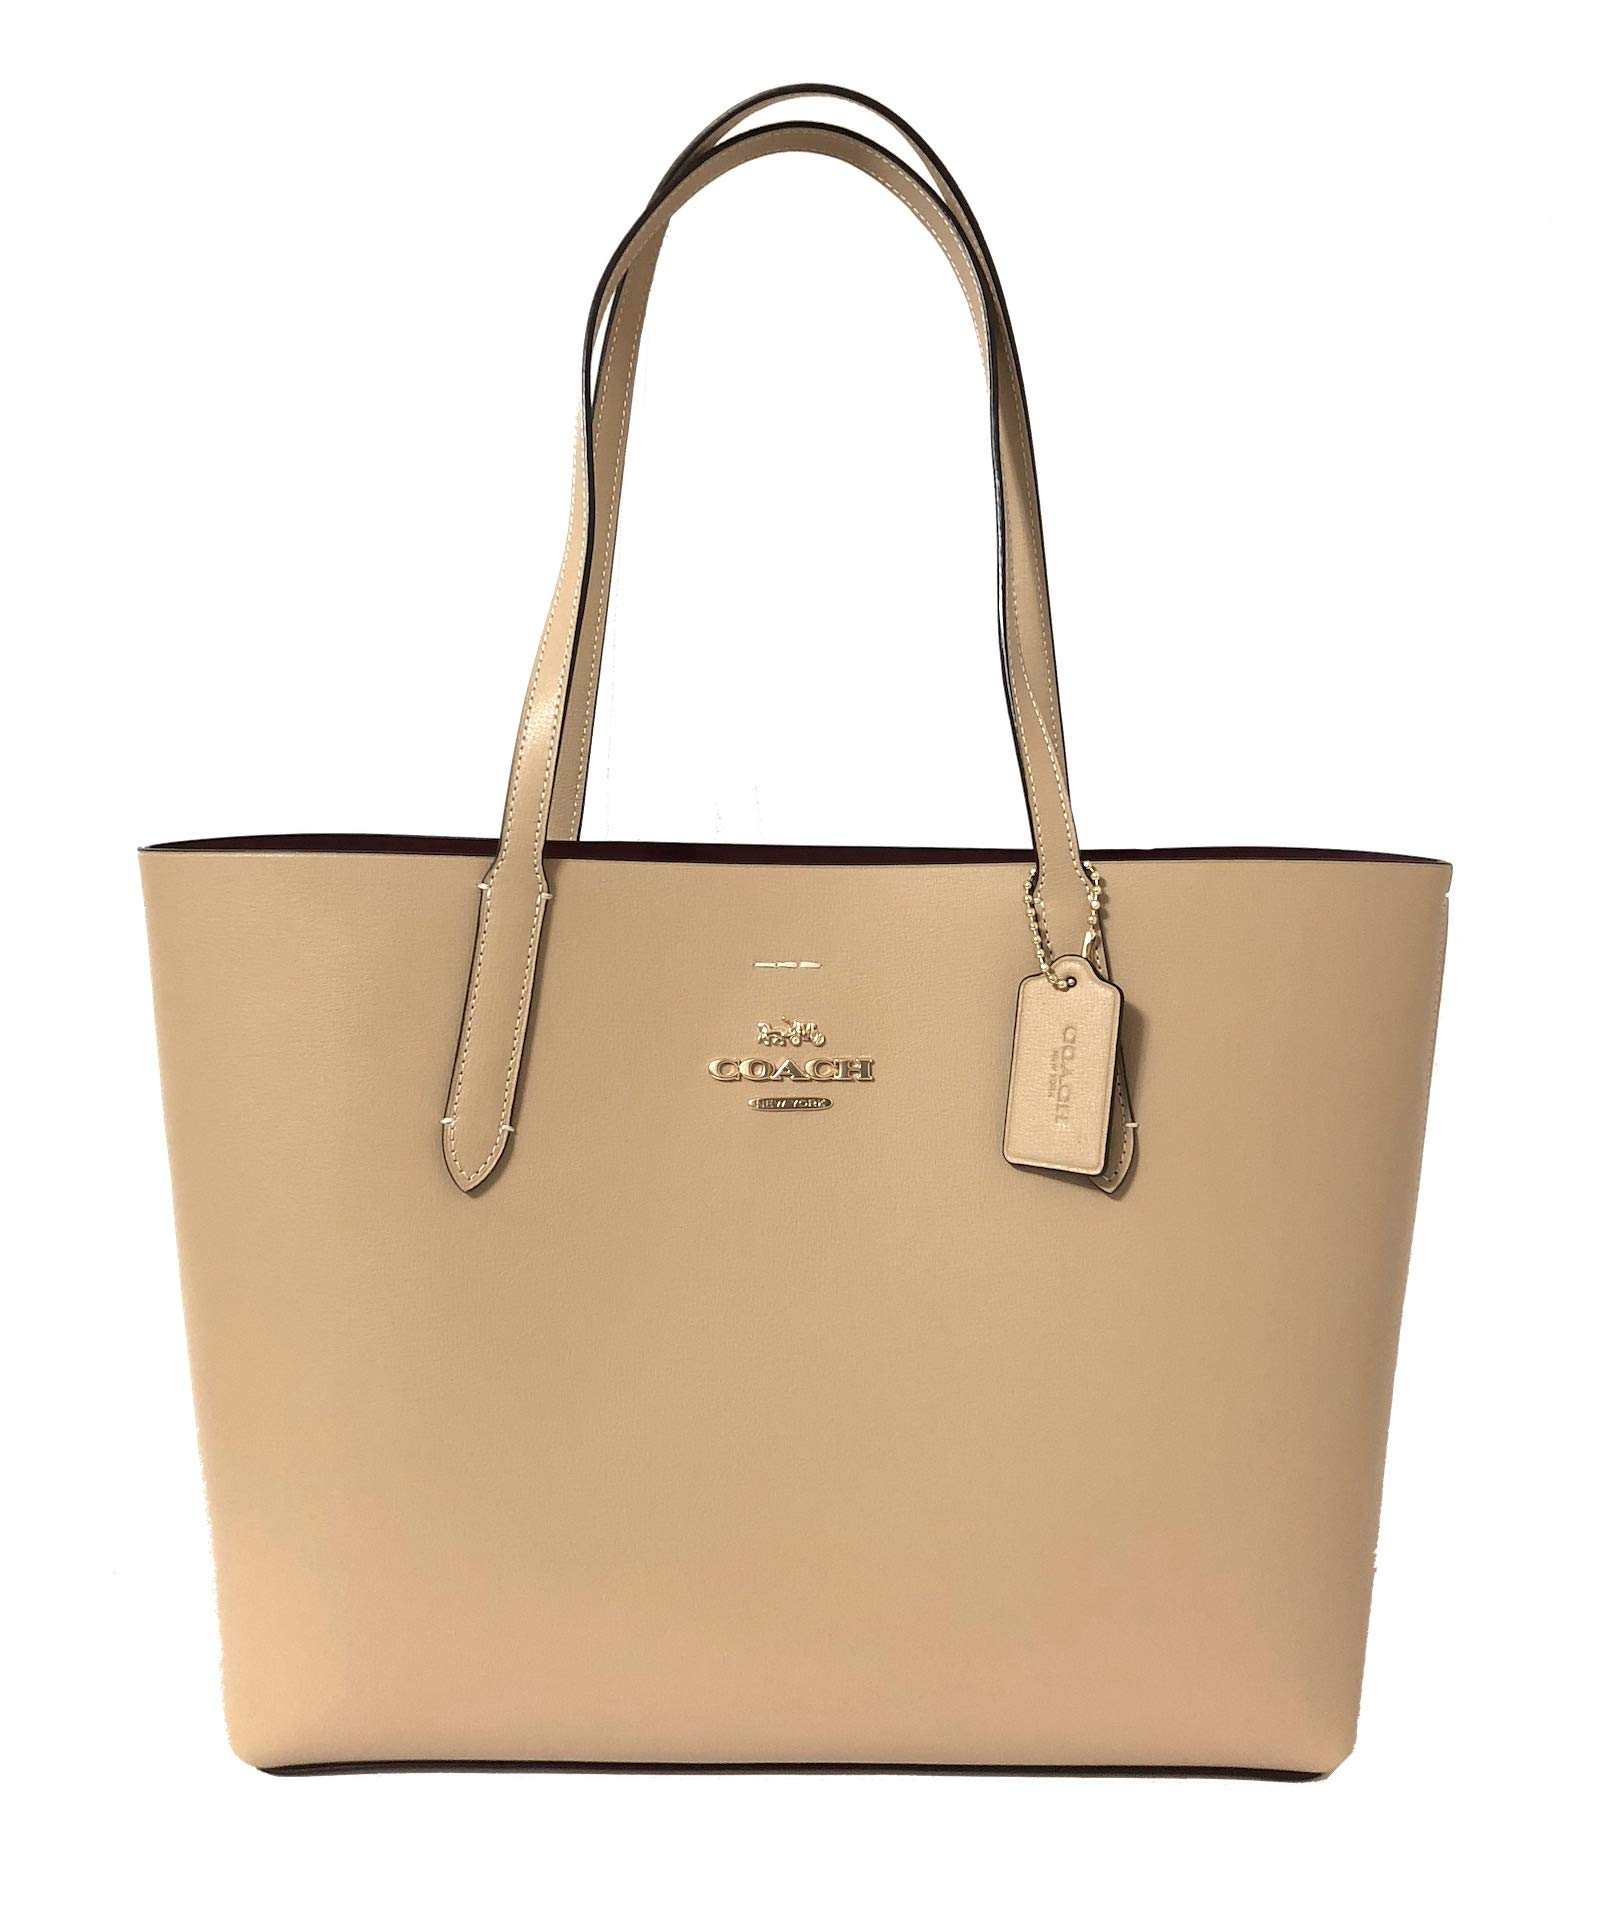 Coach F31535 Beachwood Wine Beige Large Leather Women's Tote Bag